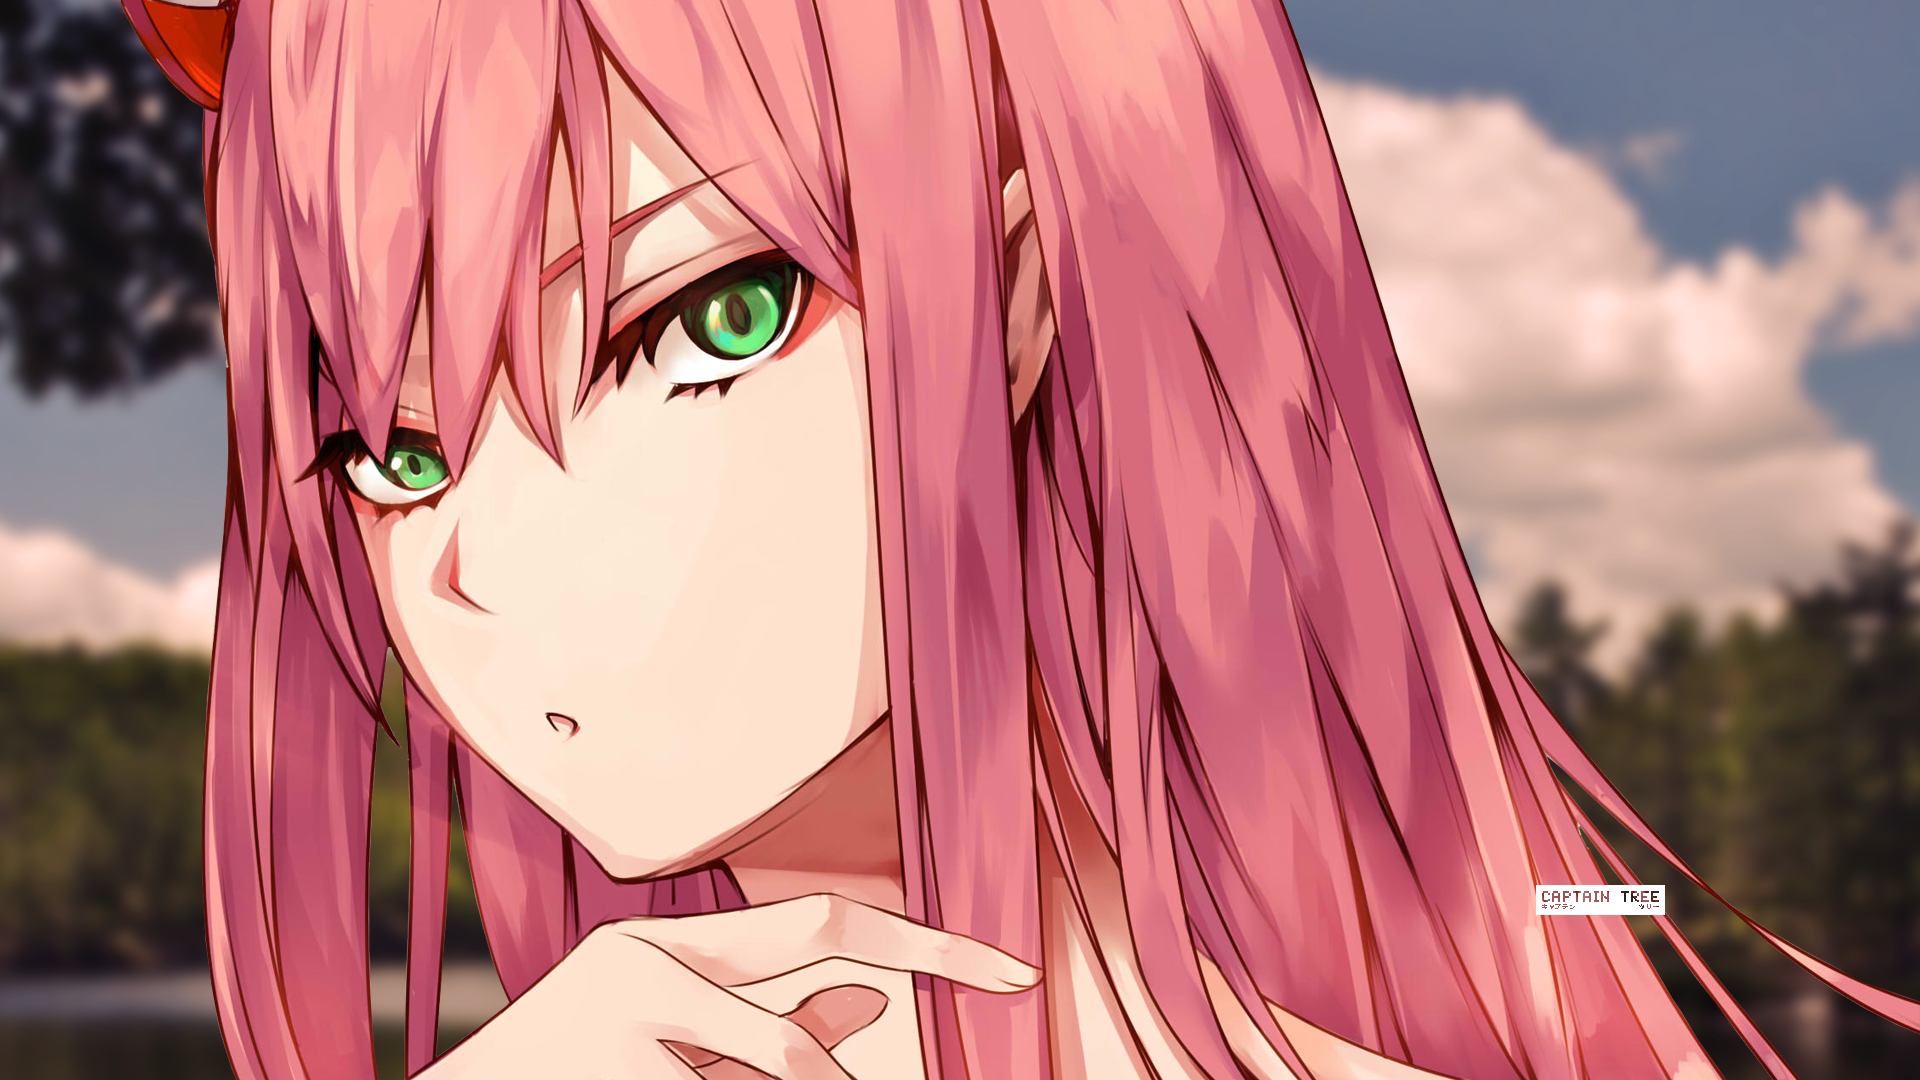 Zero Two Beauty Hd Wallpaper Background Image 1920x1080 Id 982014 Wallpaper Abyss